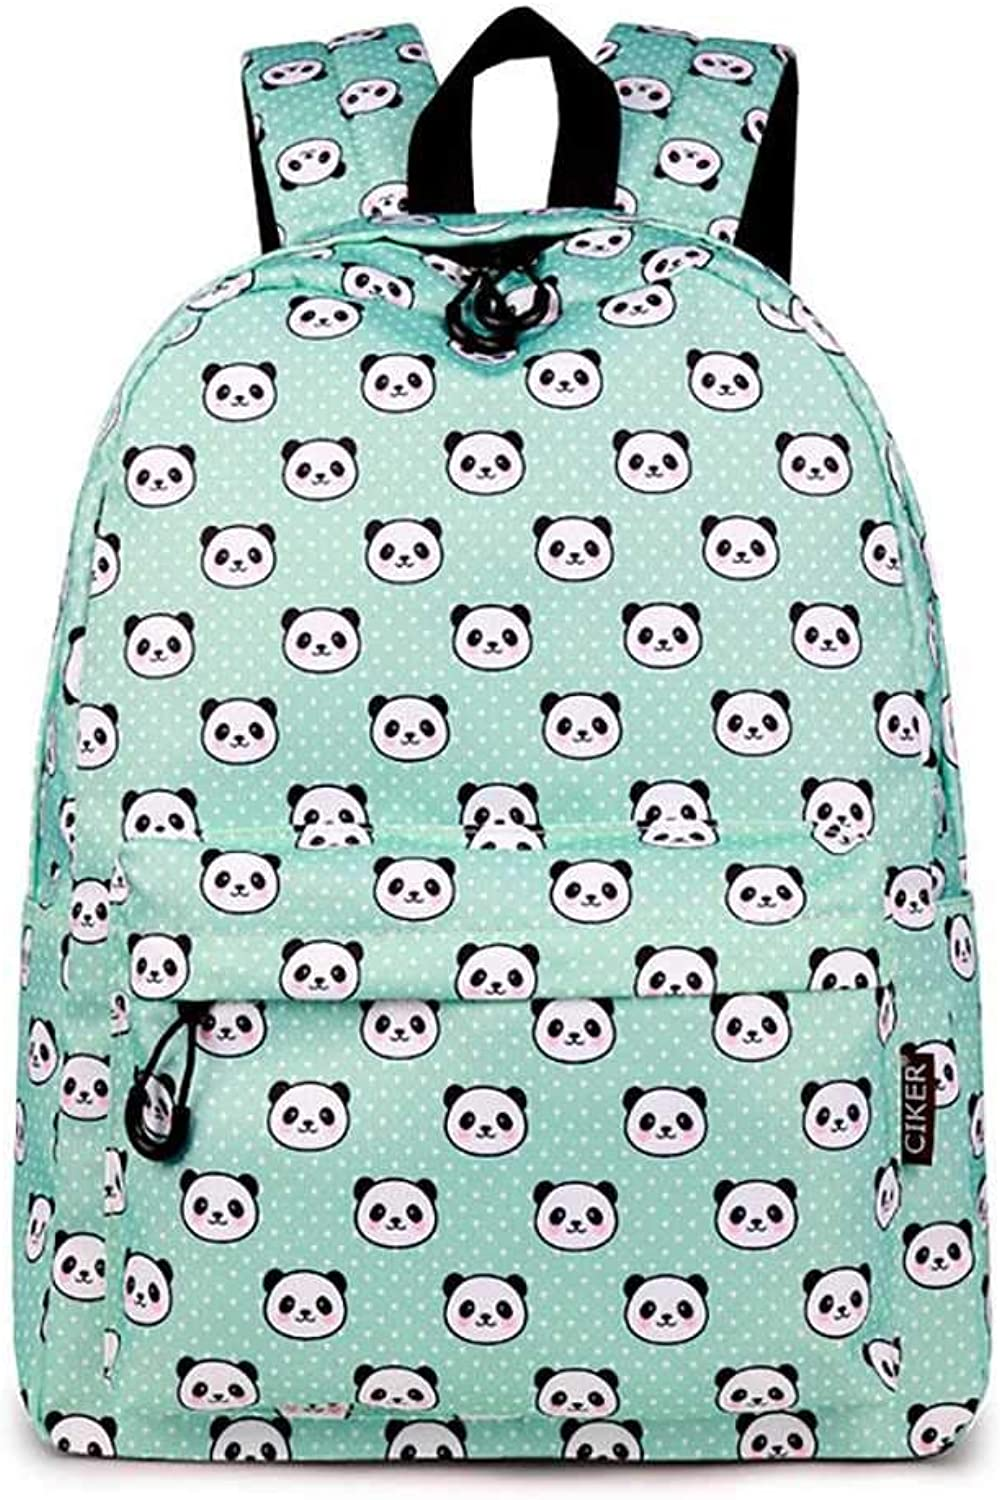 goldt1 Women Panda Print Backpack, Backpack Student Bag Casual 16.8L Backpack Zipper Waterproof Youth with Kettle Pocket (color   1)